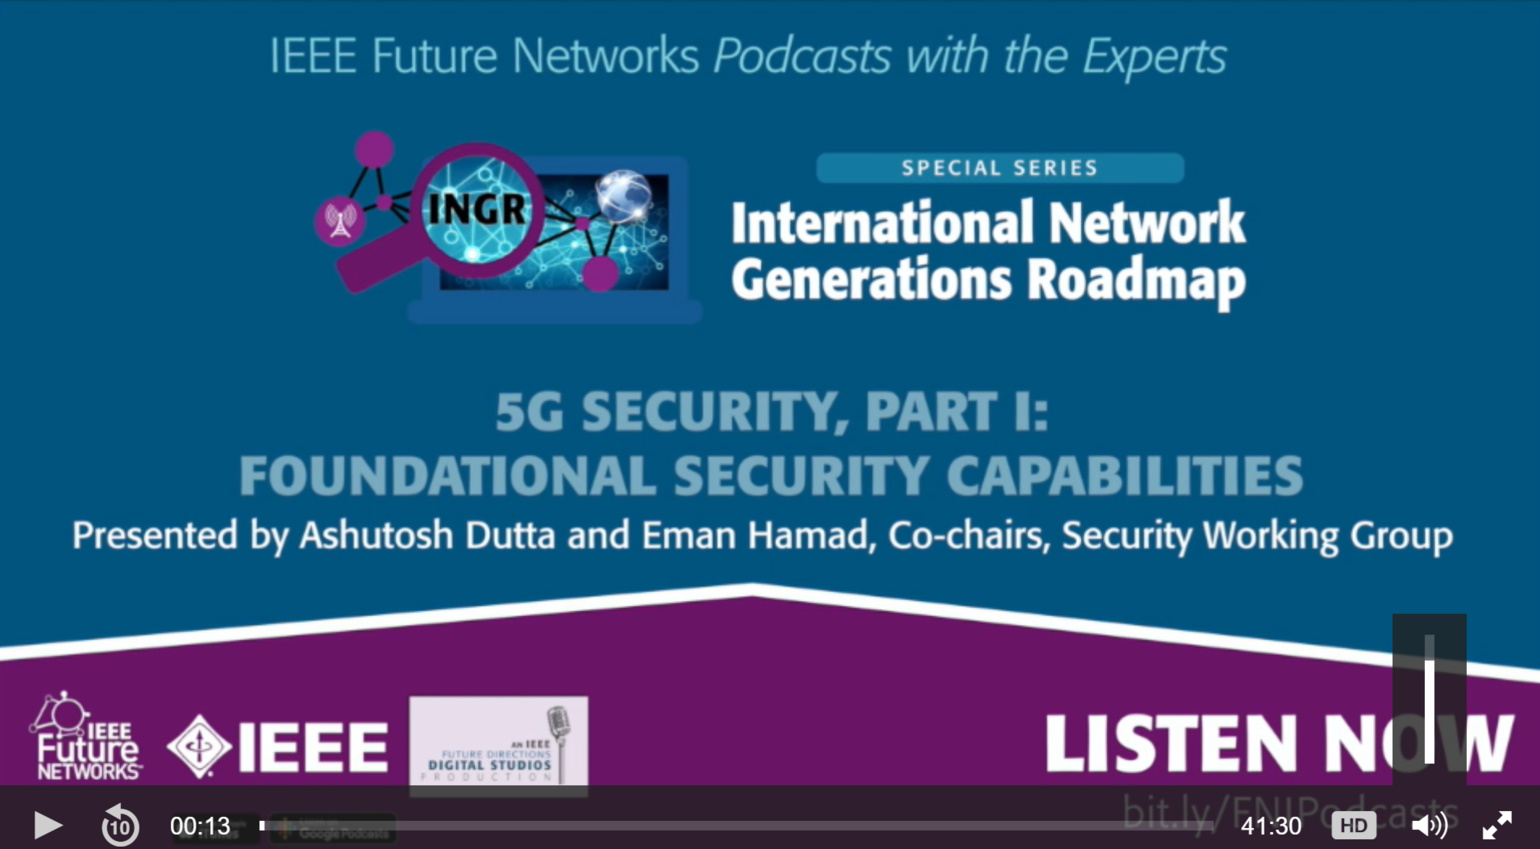 IEEE 5G Podcast with the Experts: 5G Security Part 1: Foundational Security Capabilities